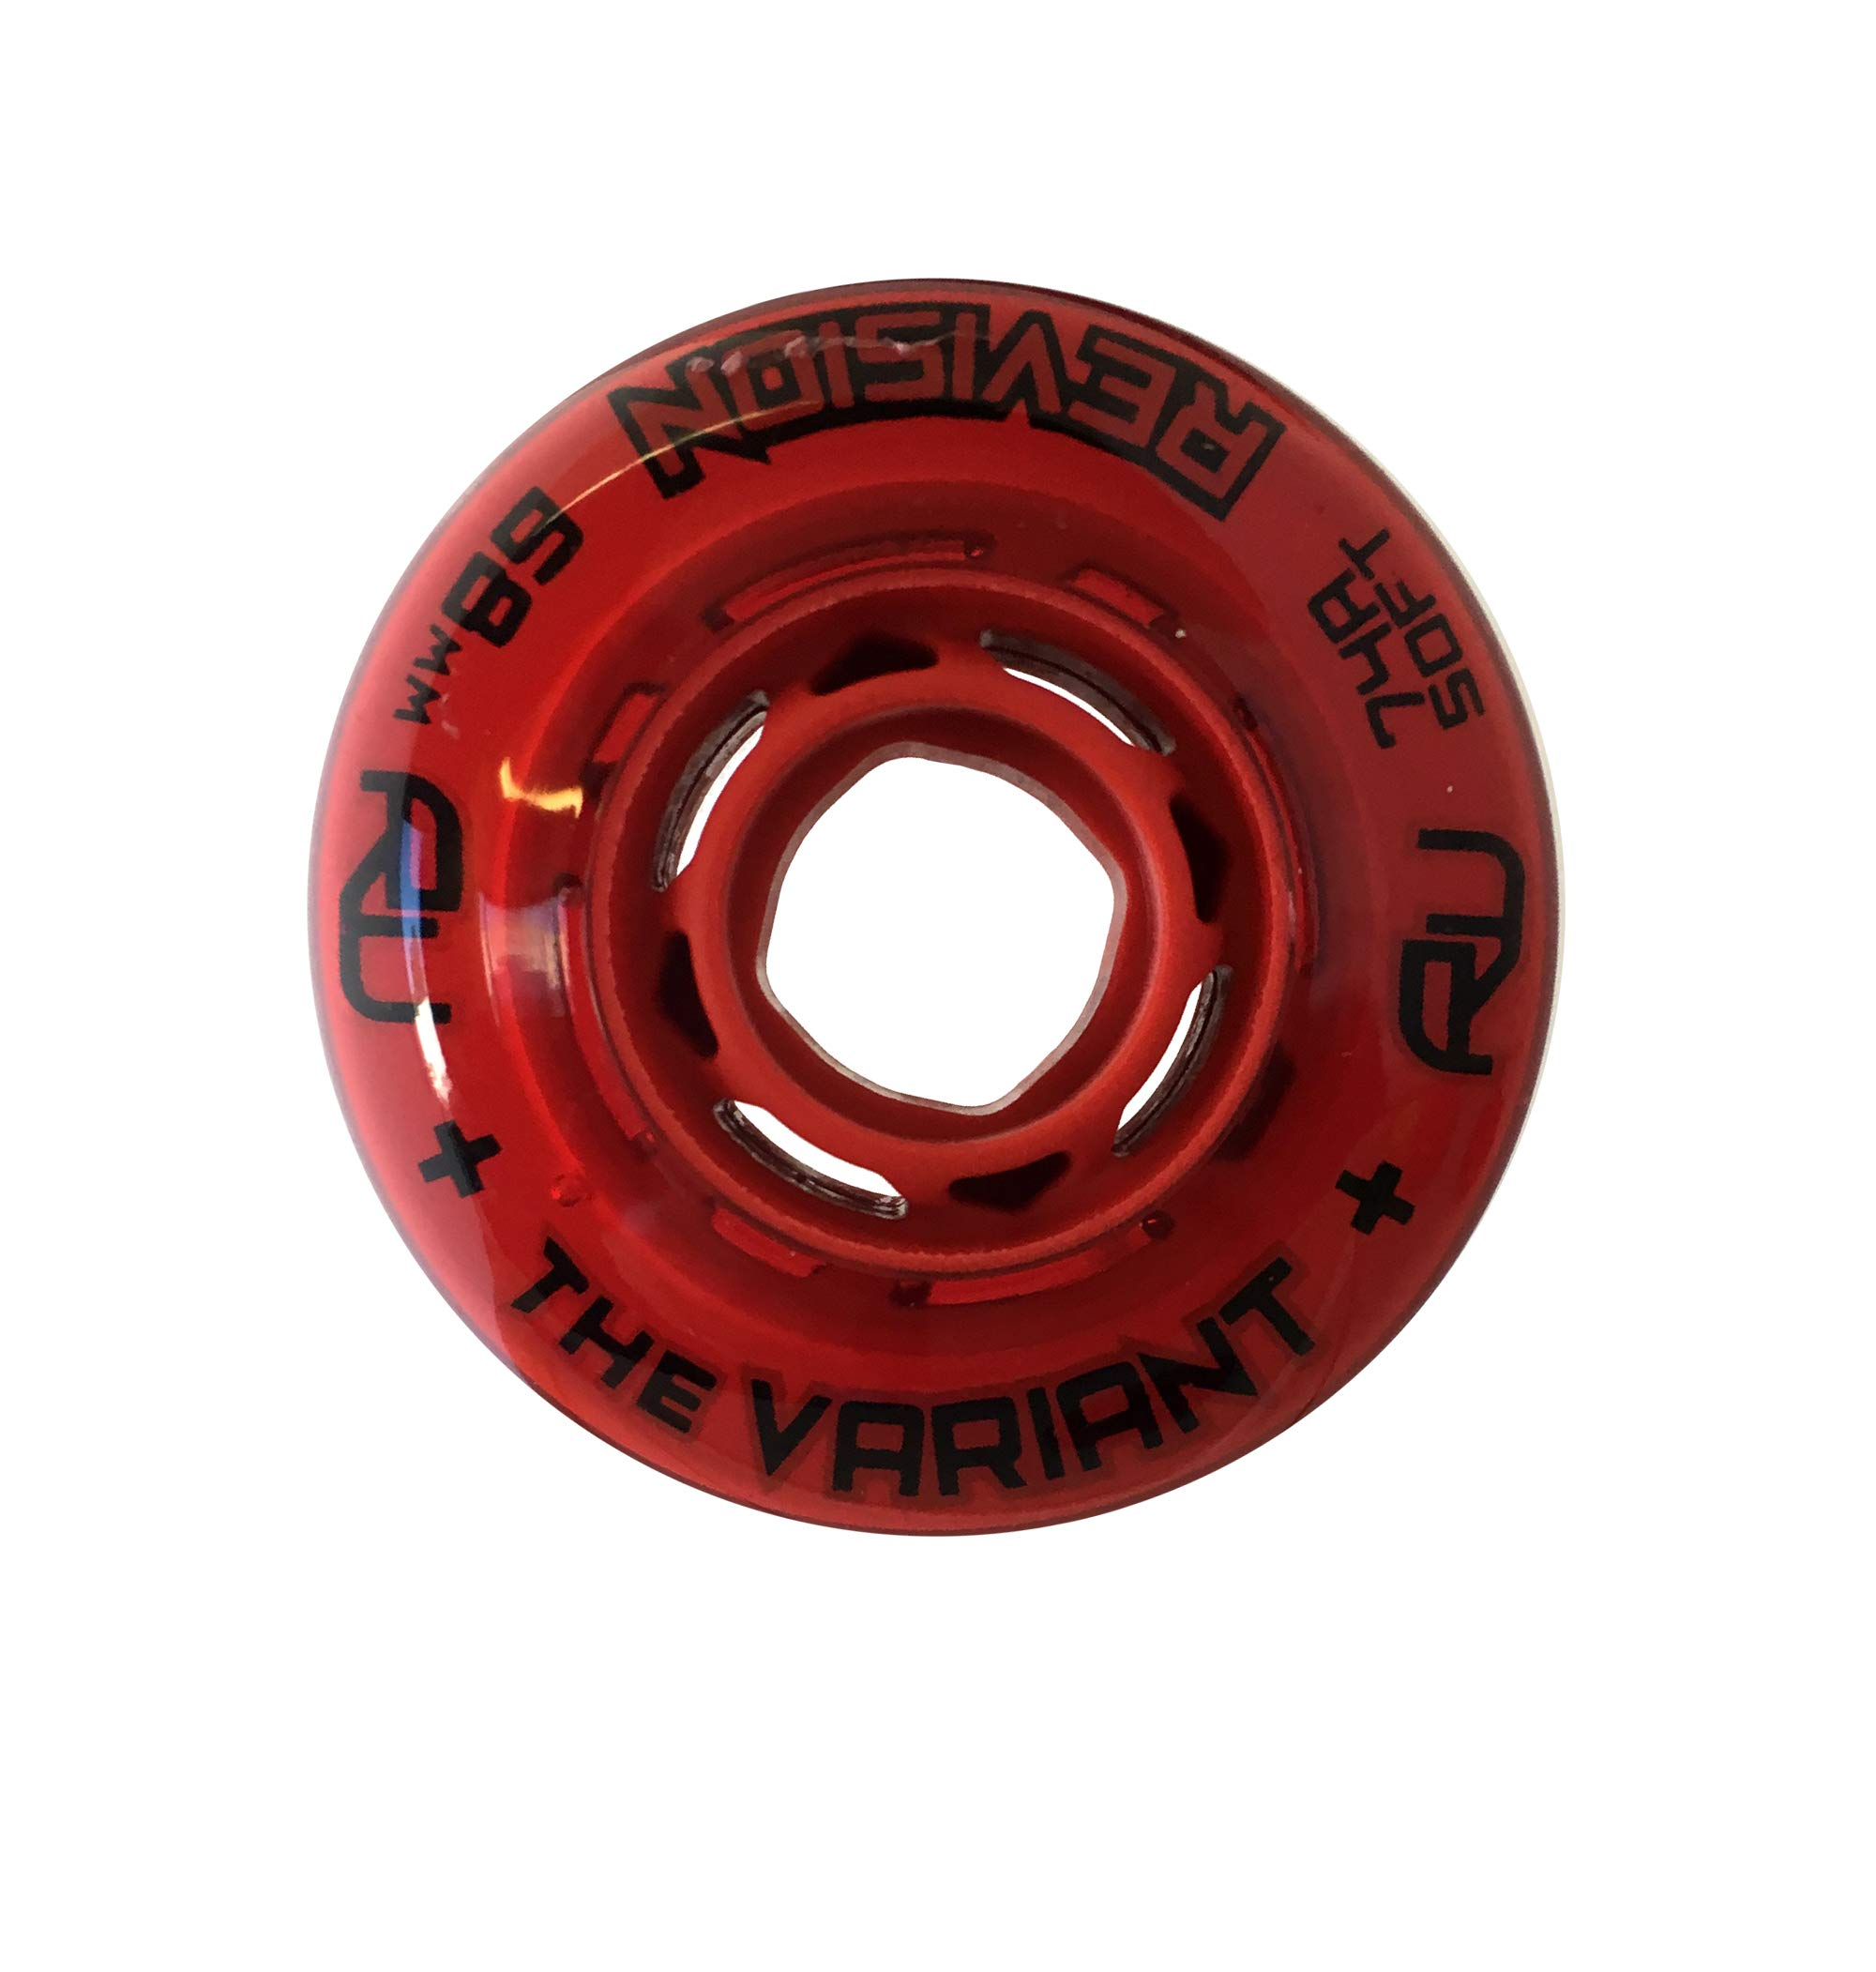 Revision Variant Indoor Inline Roller Hockey Wheel - 74A - 68mm Soft - Red by Revision Hockey